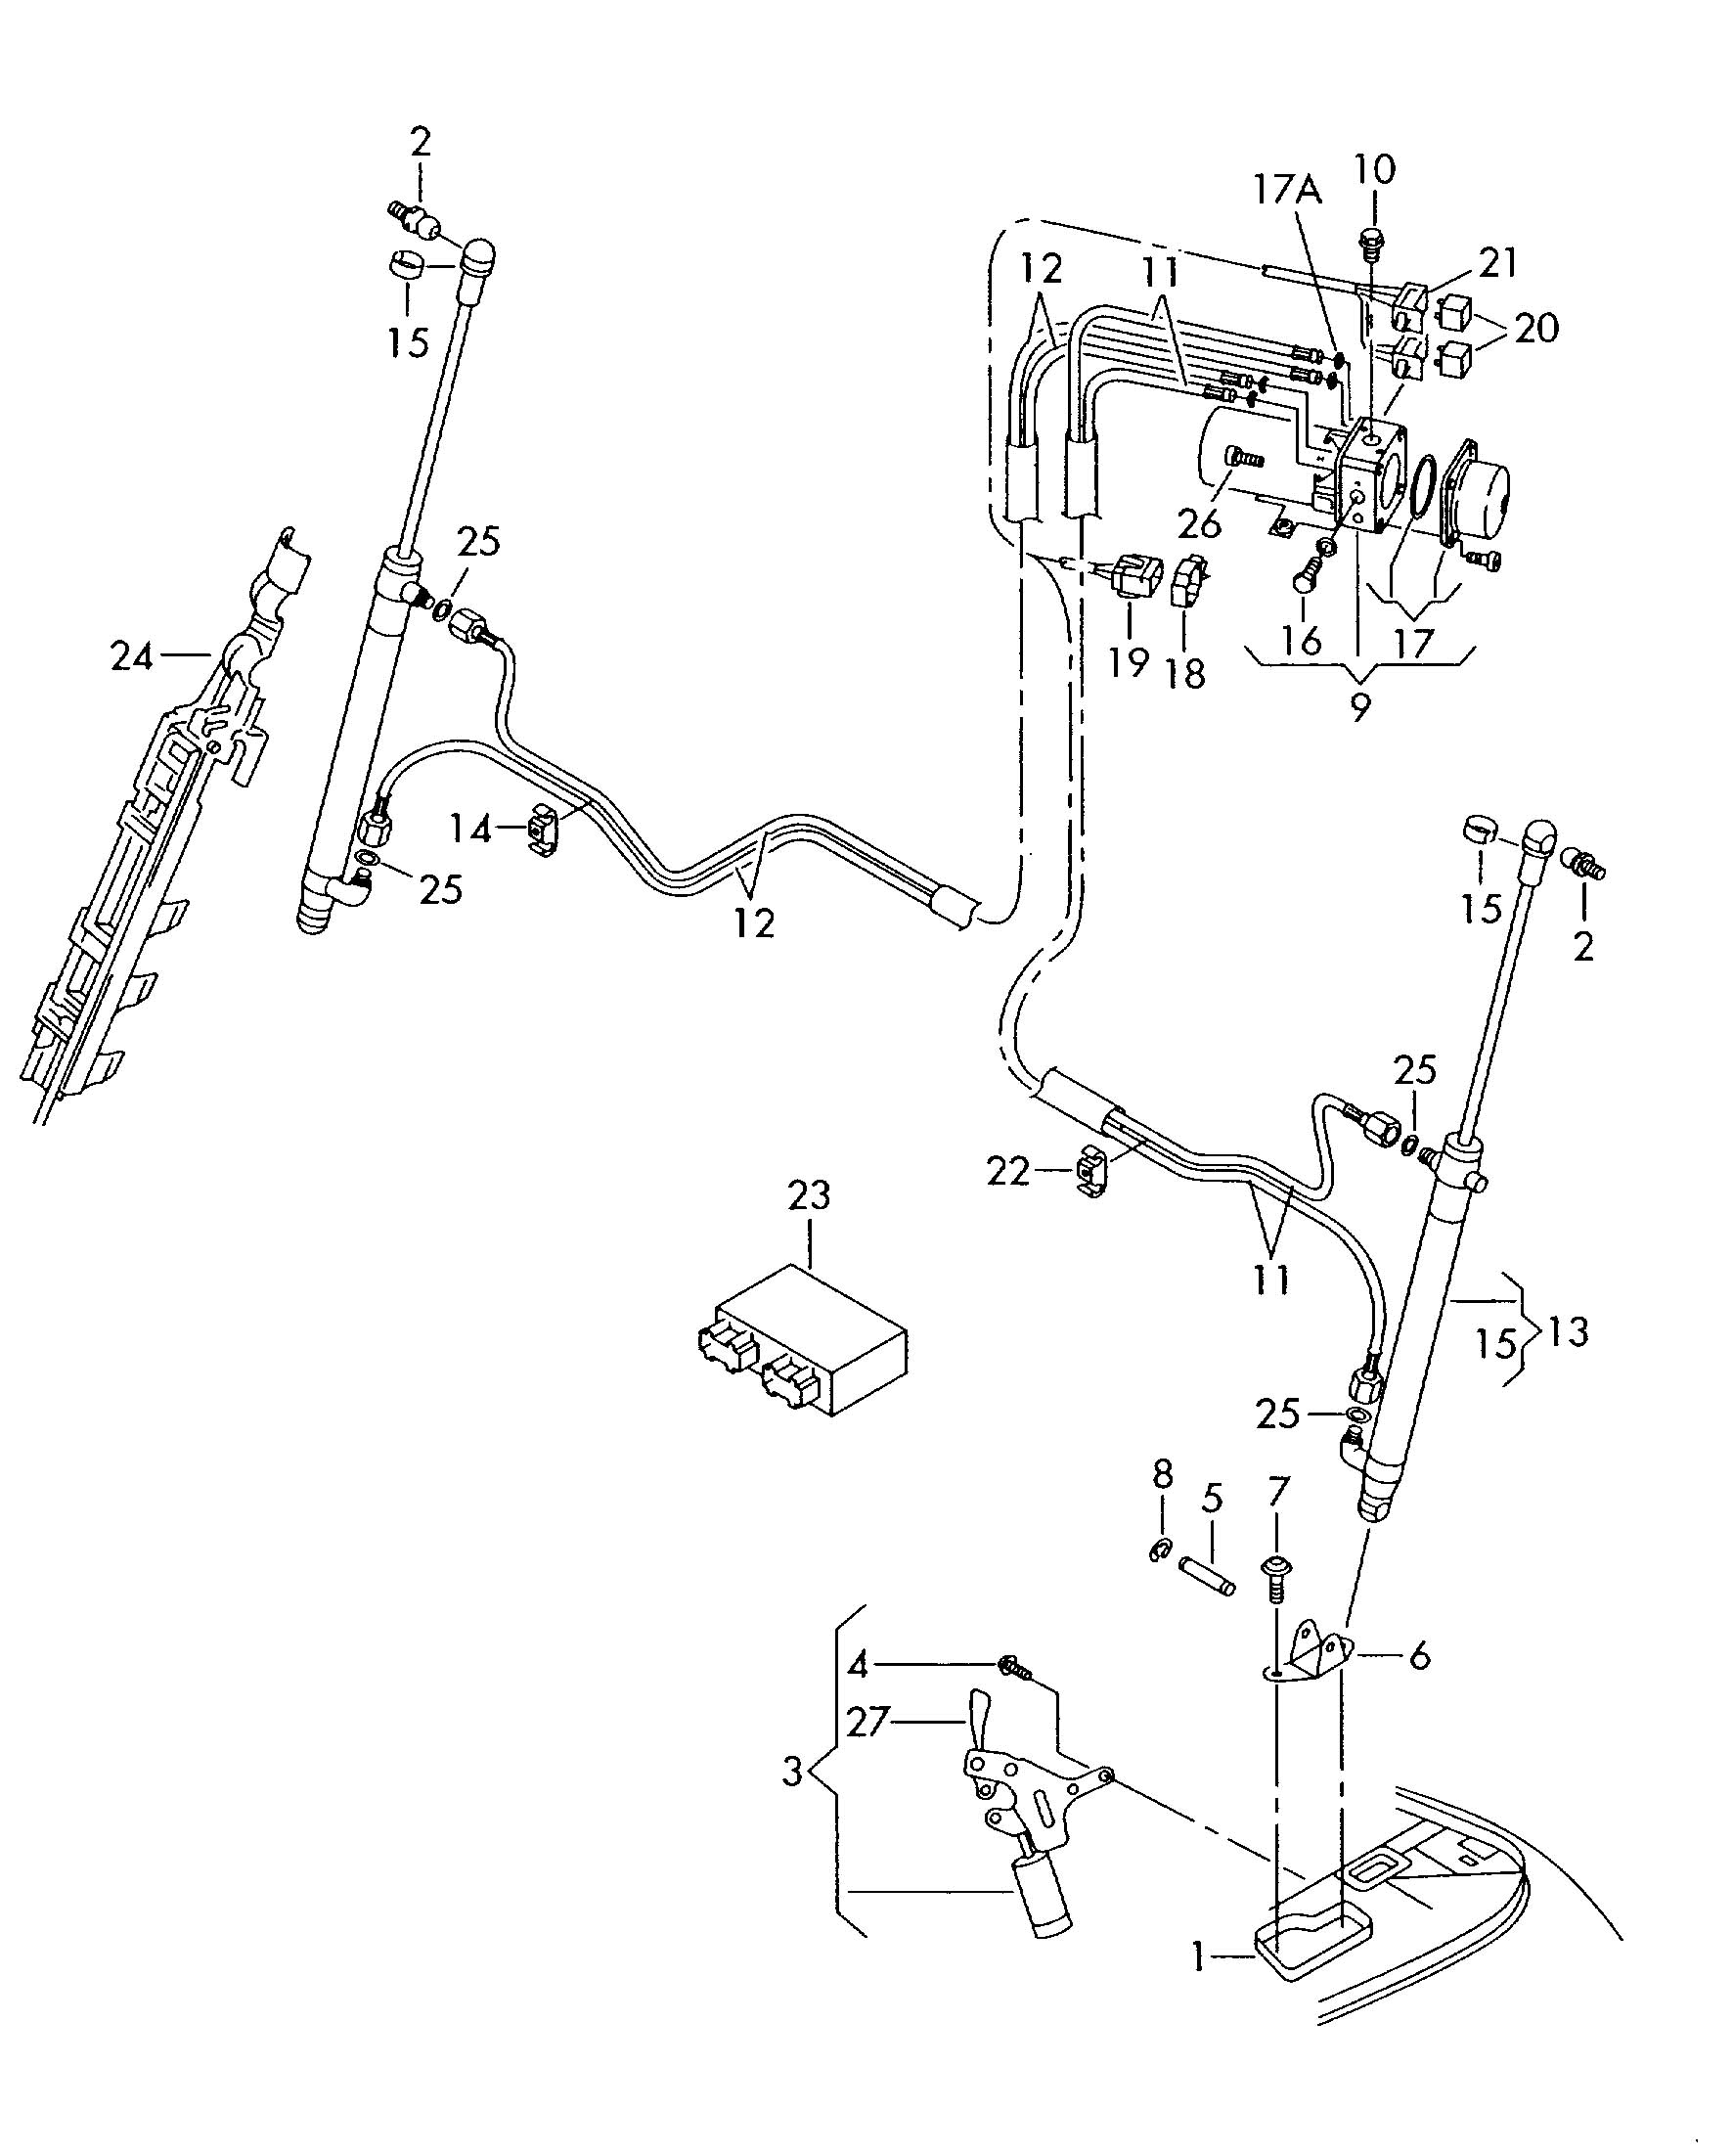 Hydraulic System For Convertible Top Operation